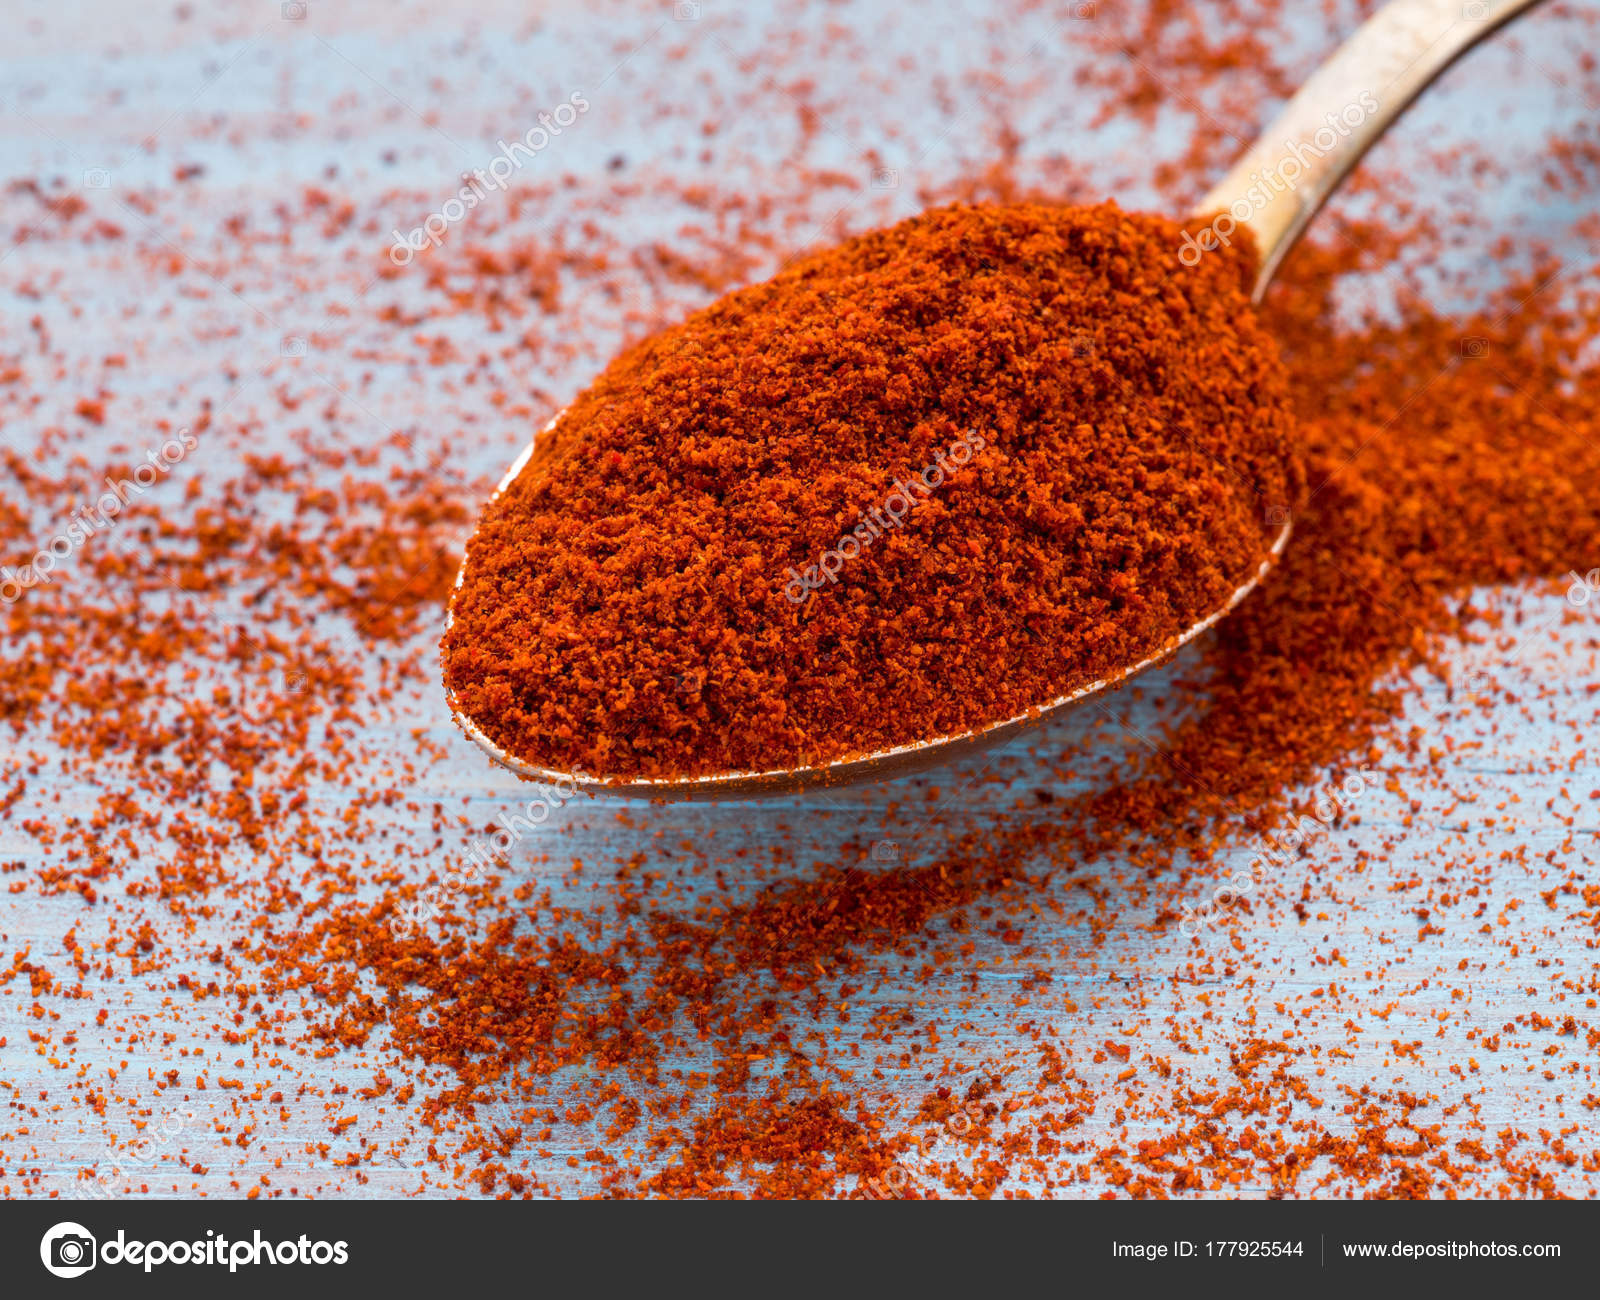 one heaping scoop of spices of paprika powder scattered on the